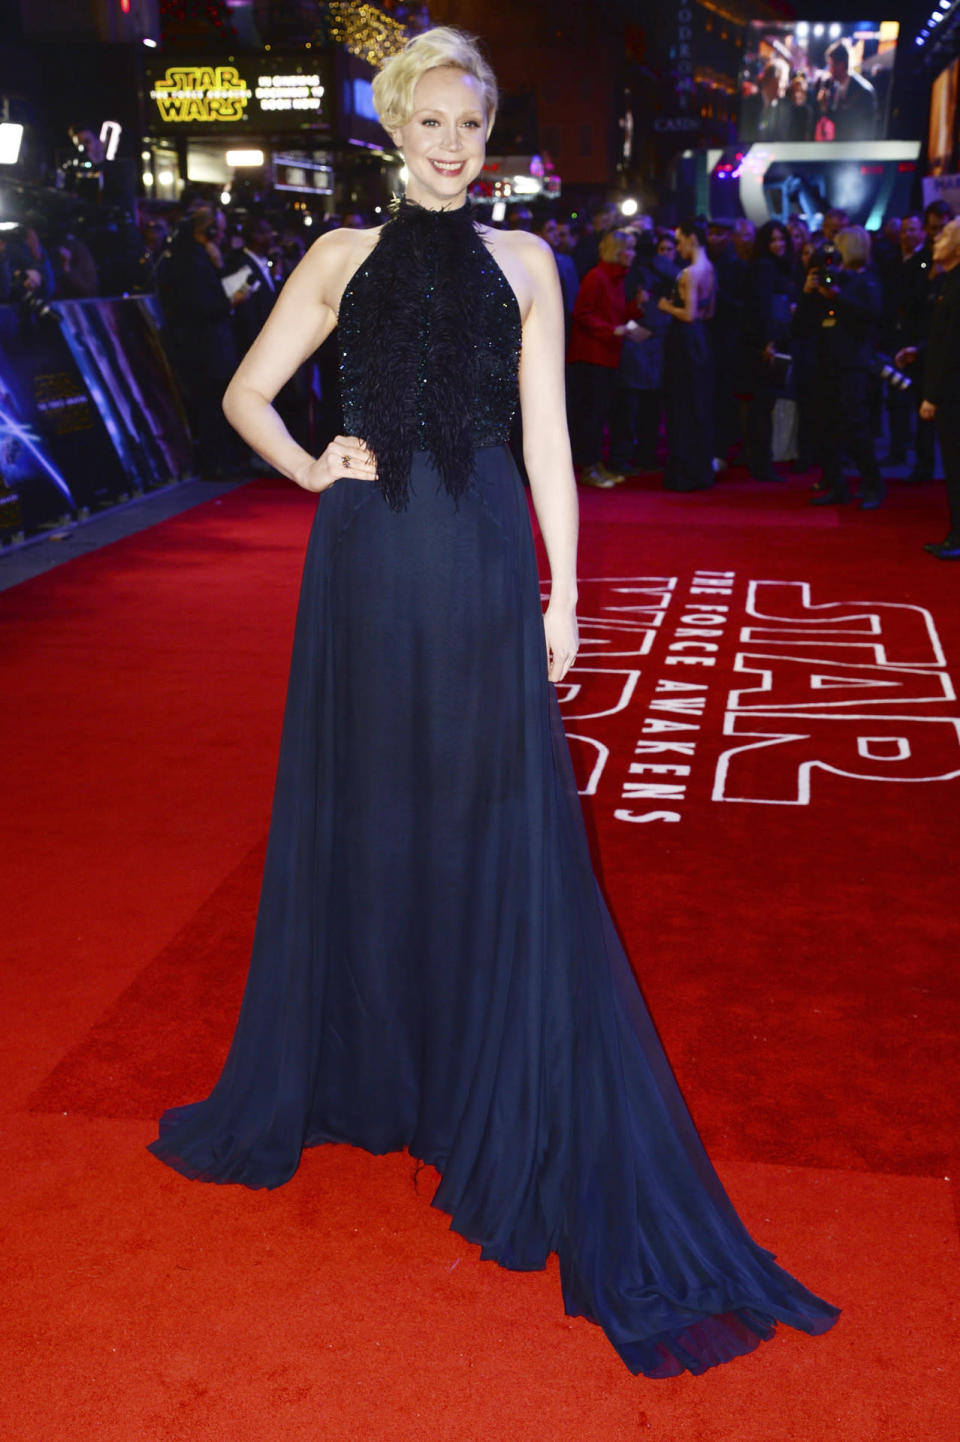 <p>Christie glowed on her hometown carpet, where she wore a black and navy dress with a sparkling fringed bodice and a flowing skirt. </p><p><i>Photo: Getty Images</i></p>